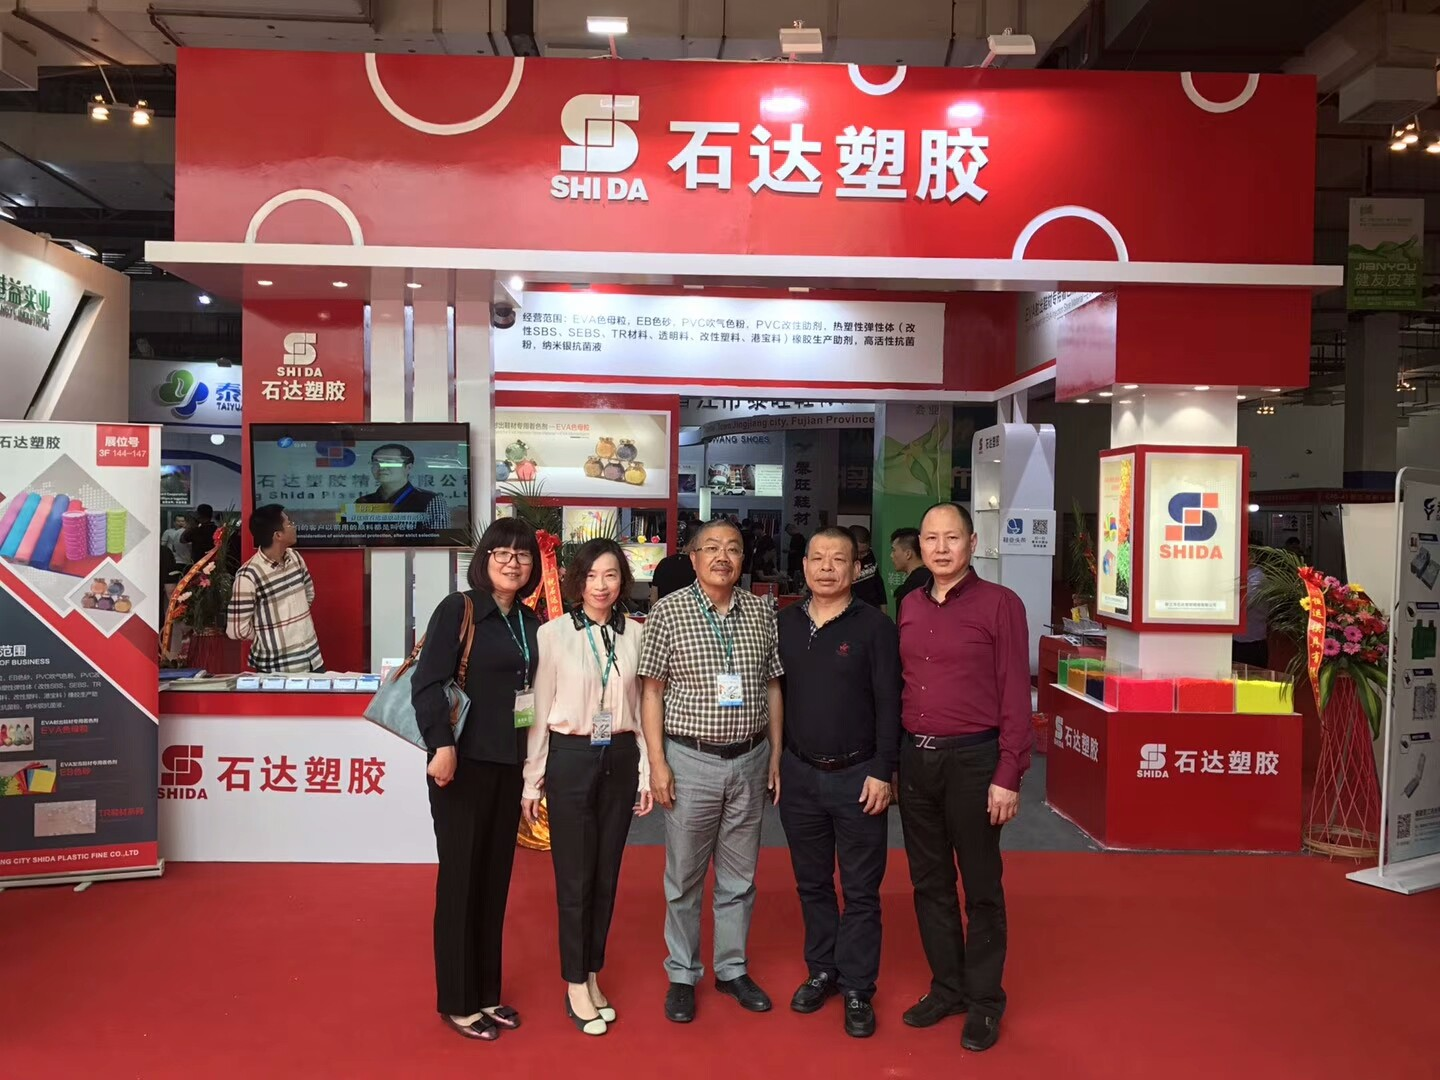 Jinjiang City Shi Da Plastic Attended Jin Jiang Shoe Exposition and Harvested